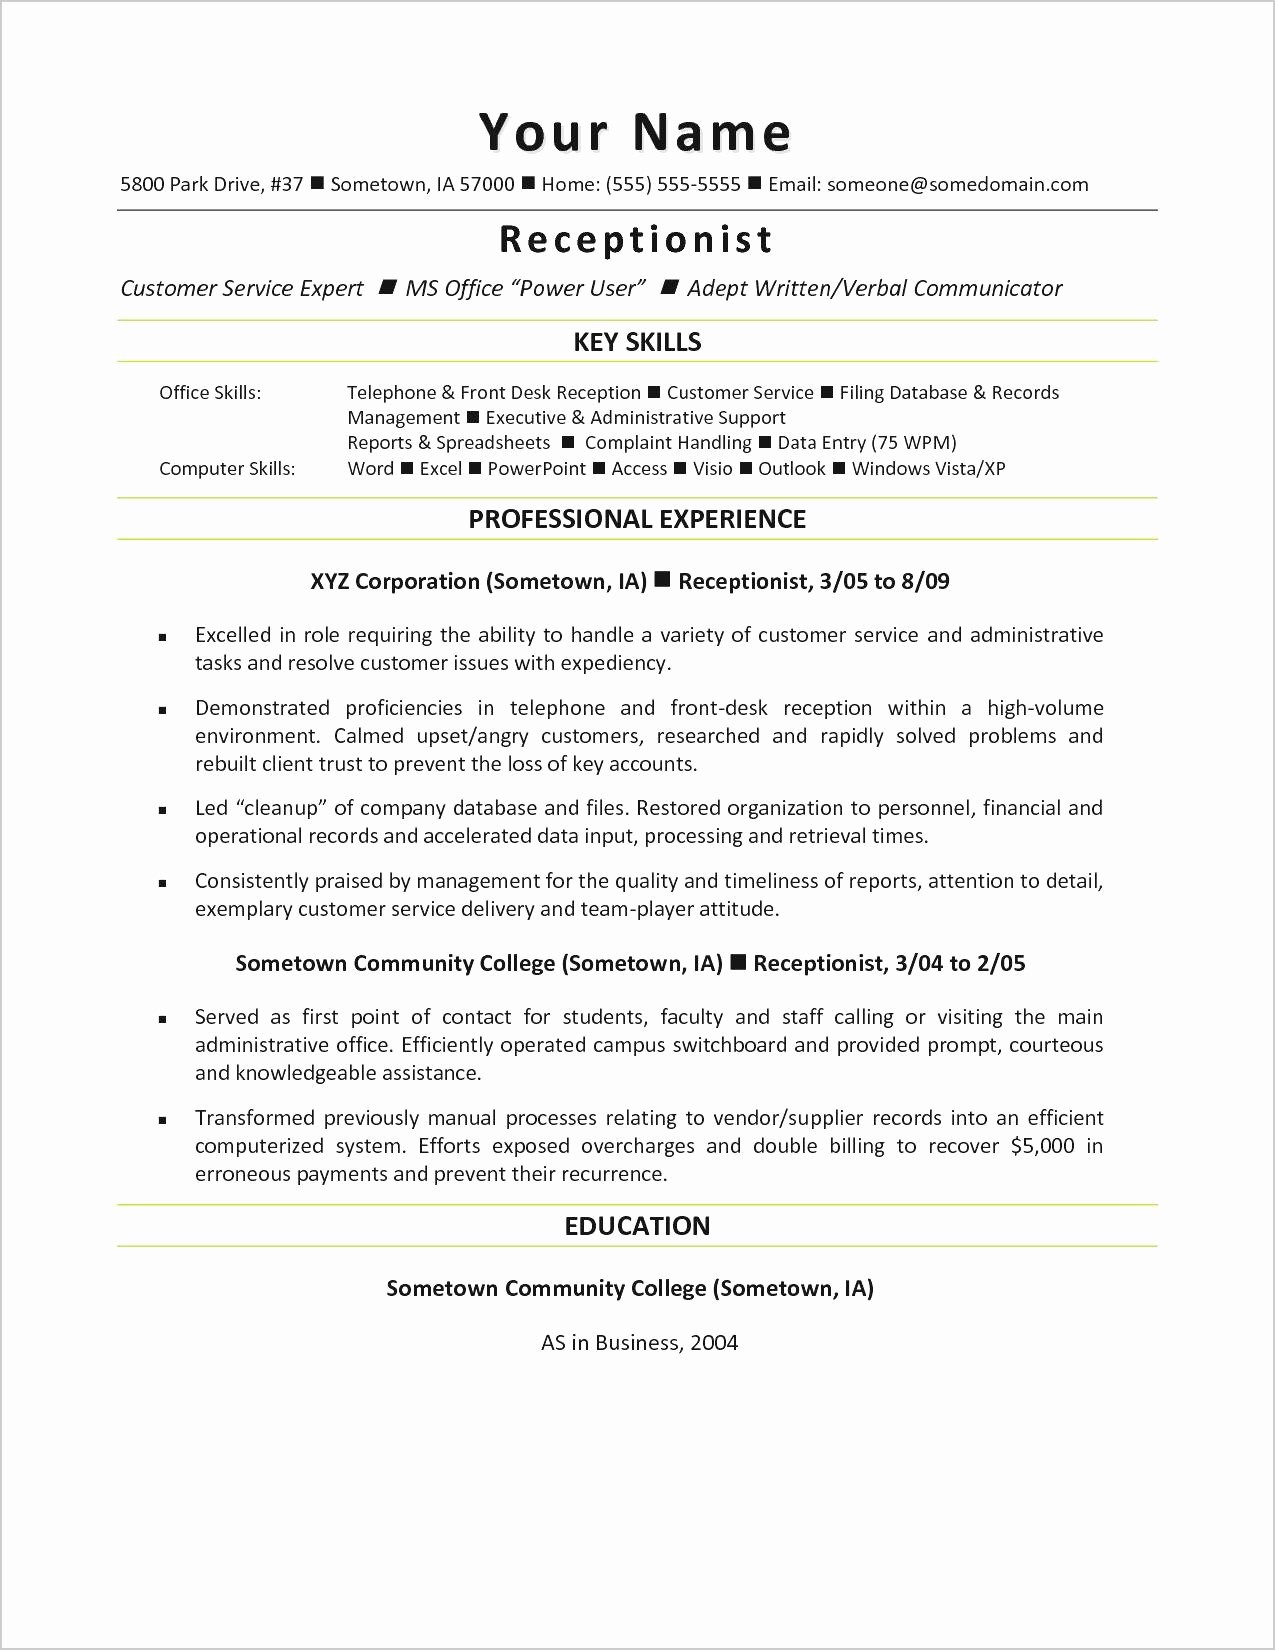 Dishwasher Resume Example - Dishwasher Resume Save Dishwasher Resume Sample Druminventions